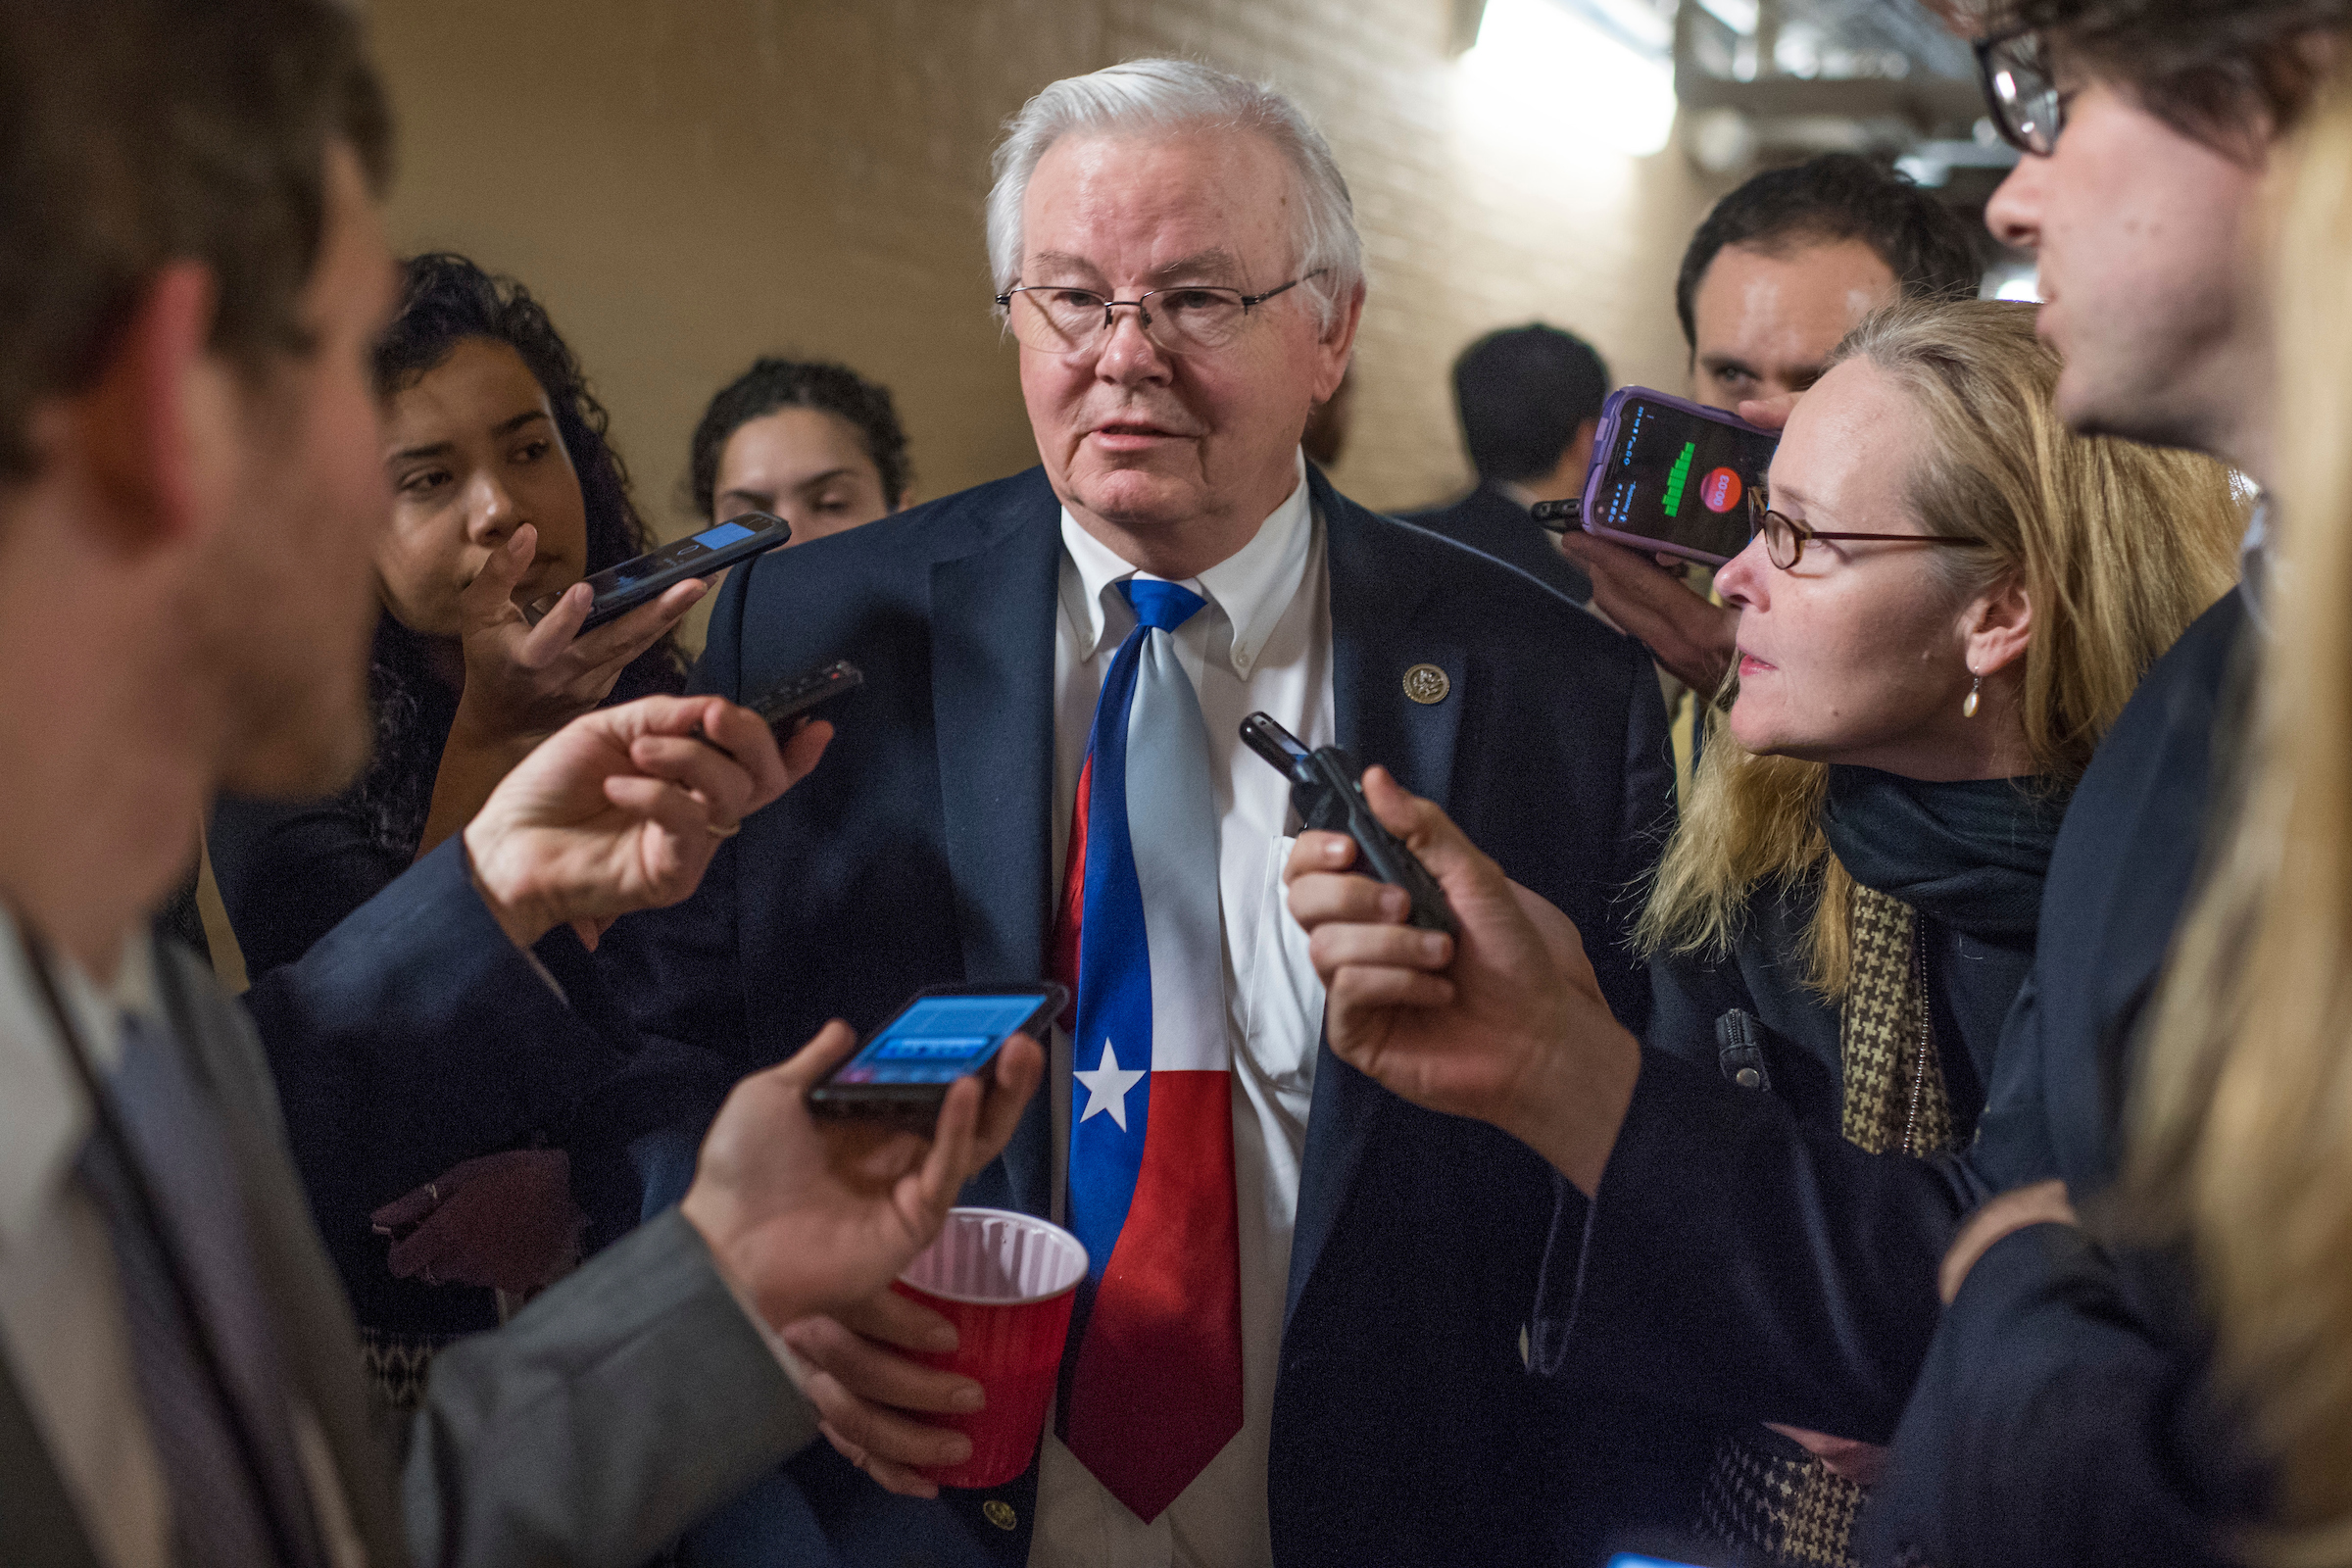 UNITED STATES - MARCH 24: Rep. Joe Barton, R-Texas, leaves a meeting of the House Republican Conference where Speaker Paul Ryan, R-Wis., announced the vote for American Health Care Act had been canceled, March 24, 2017. (Photo By Tom Williams/CQ Roll Call)